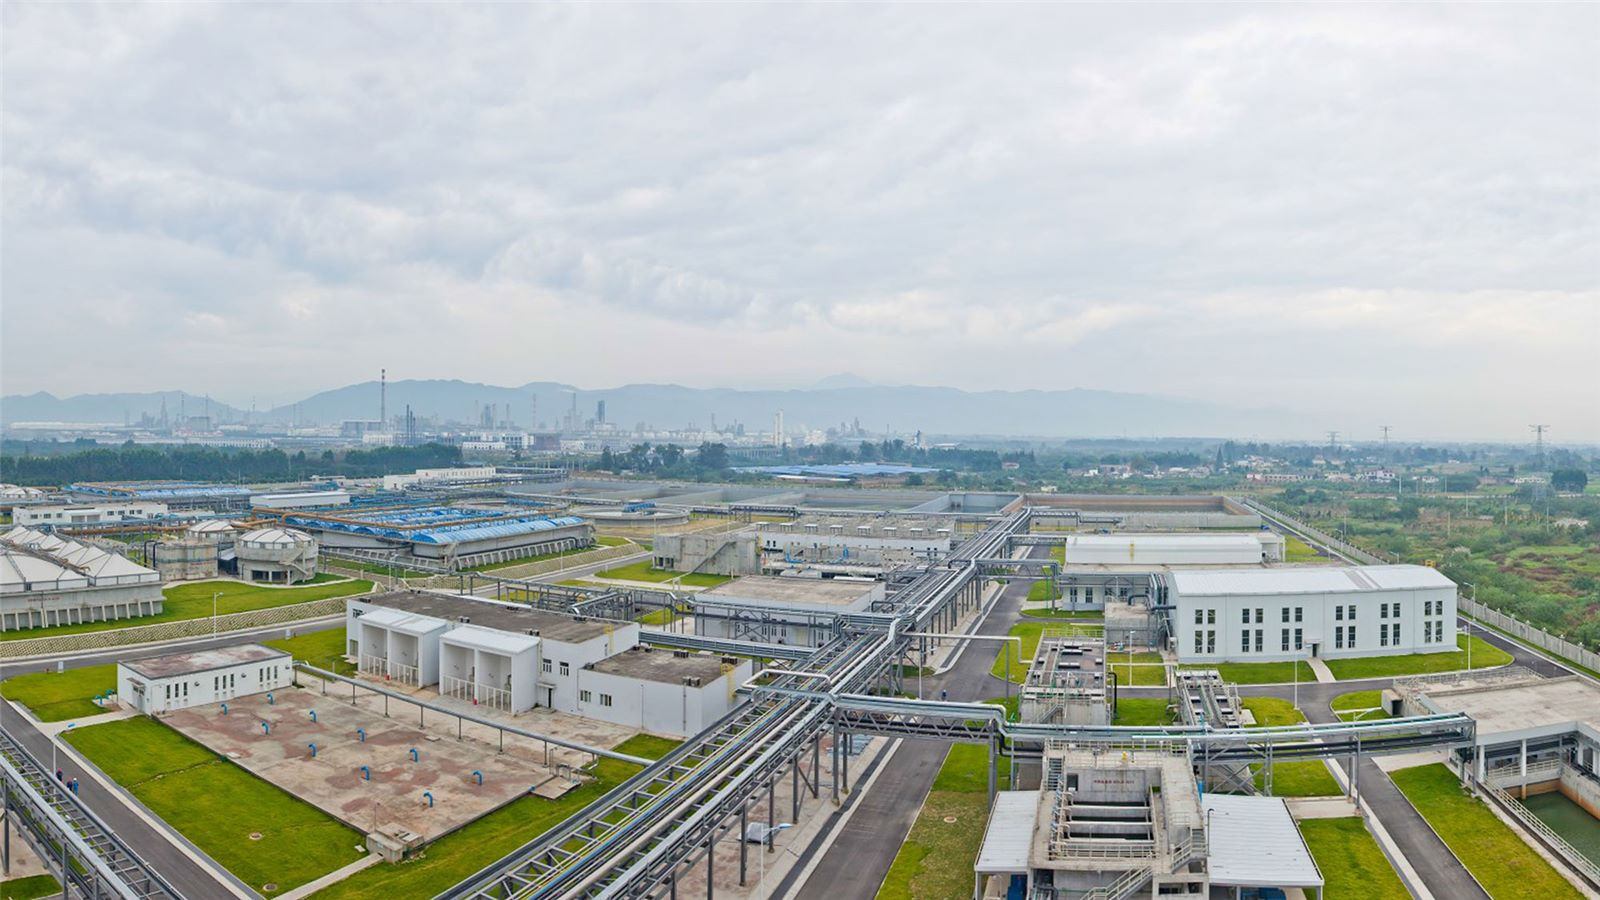 Chengdu refinery Industrial wastewater treatment and reuse